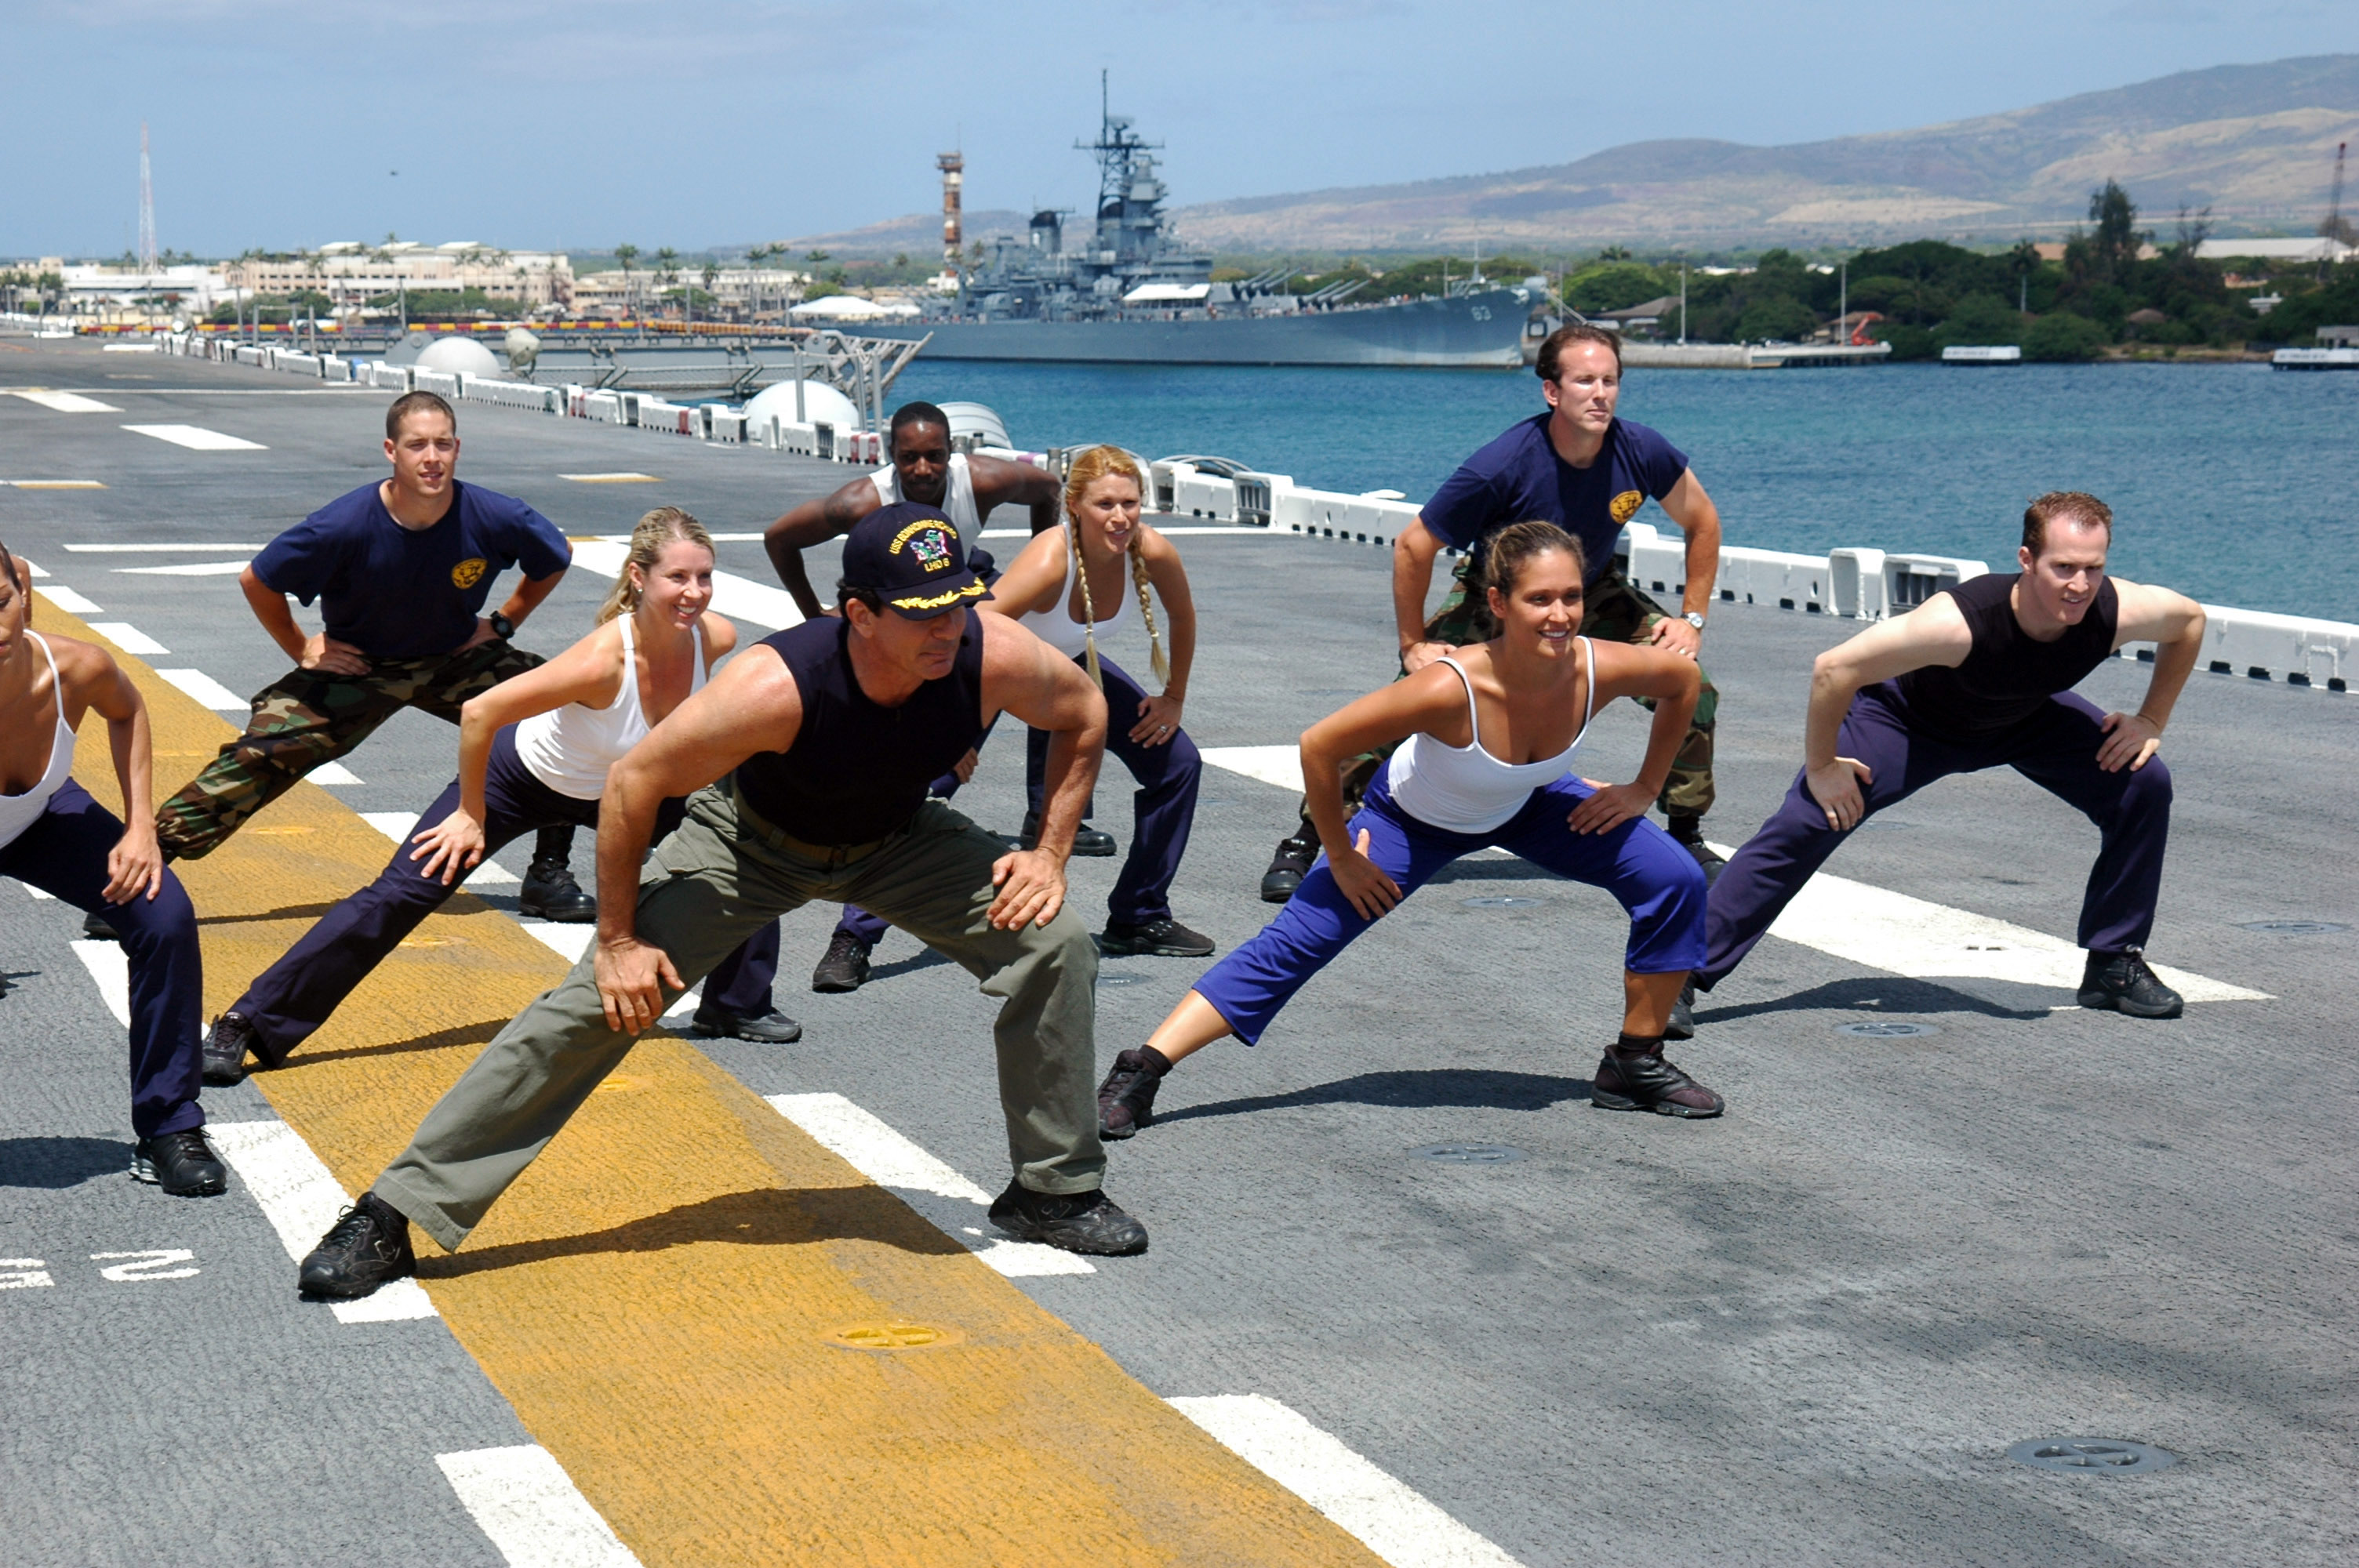 File:US Navy 060627-N-5290S-097 Gilad of the Fit TV show ...